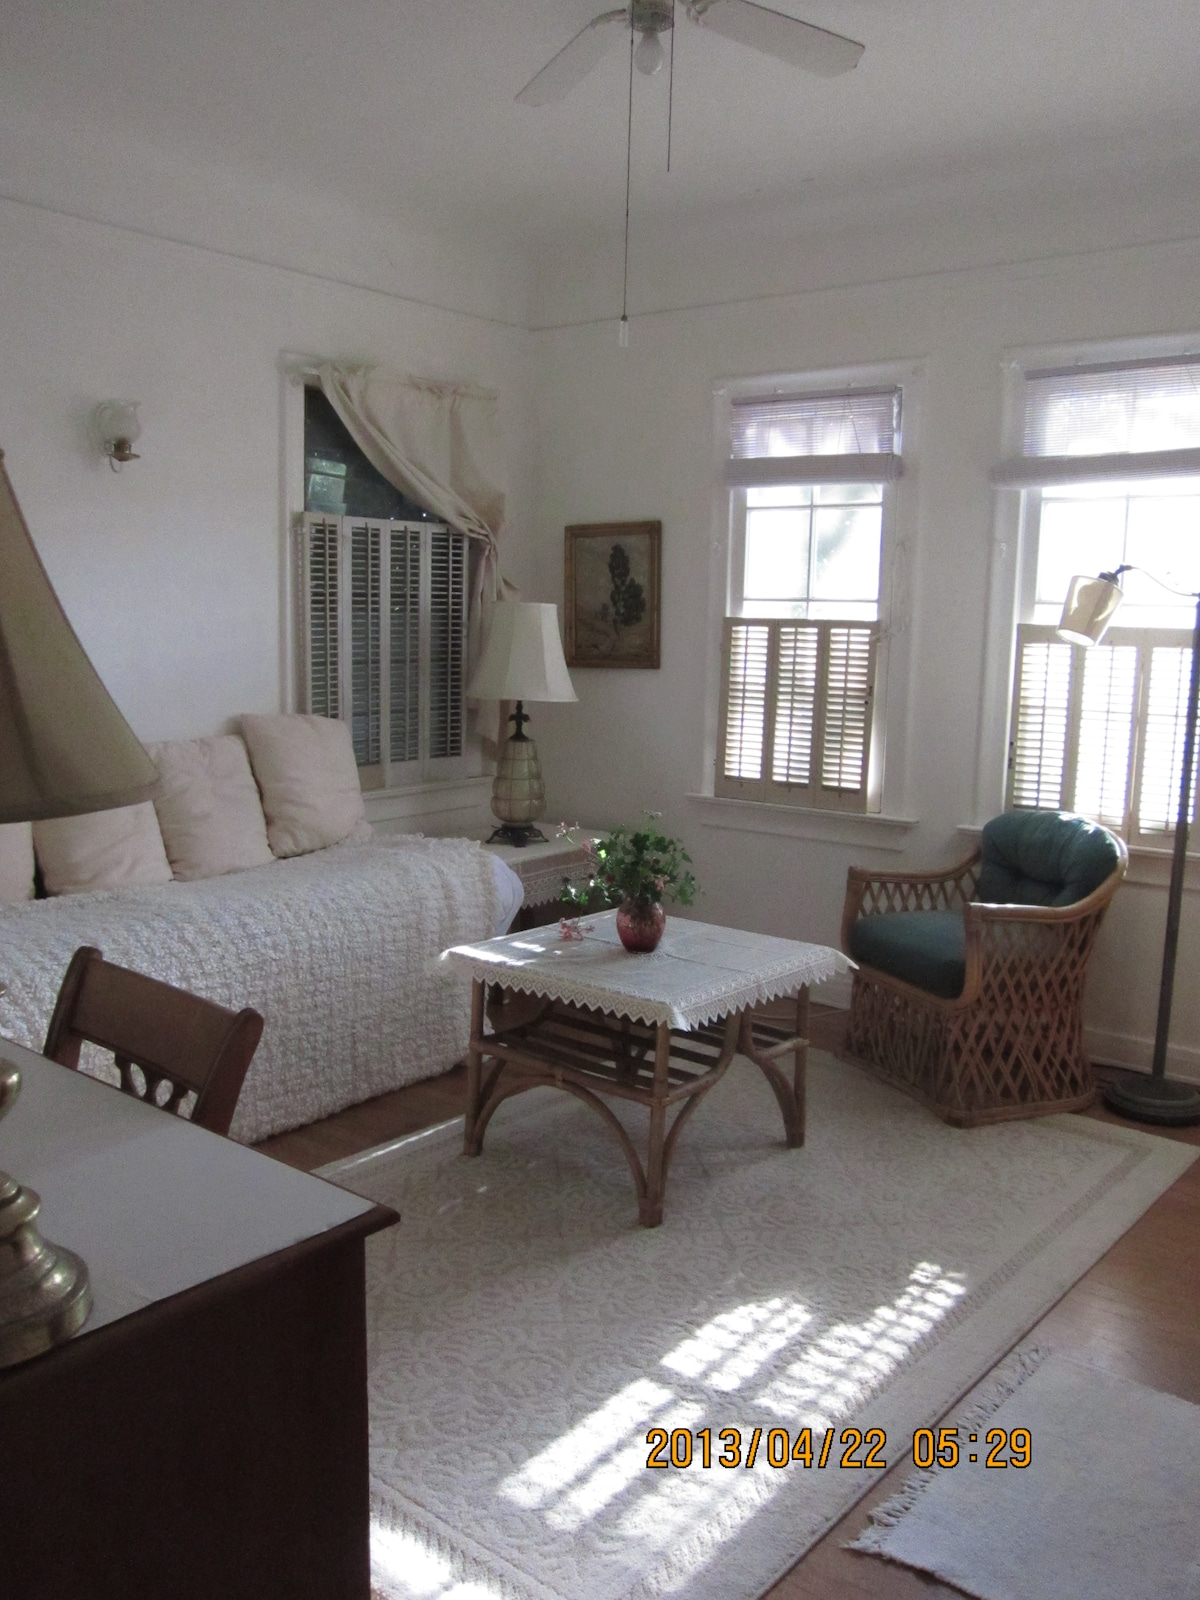 Lovely, airy room in best LA area